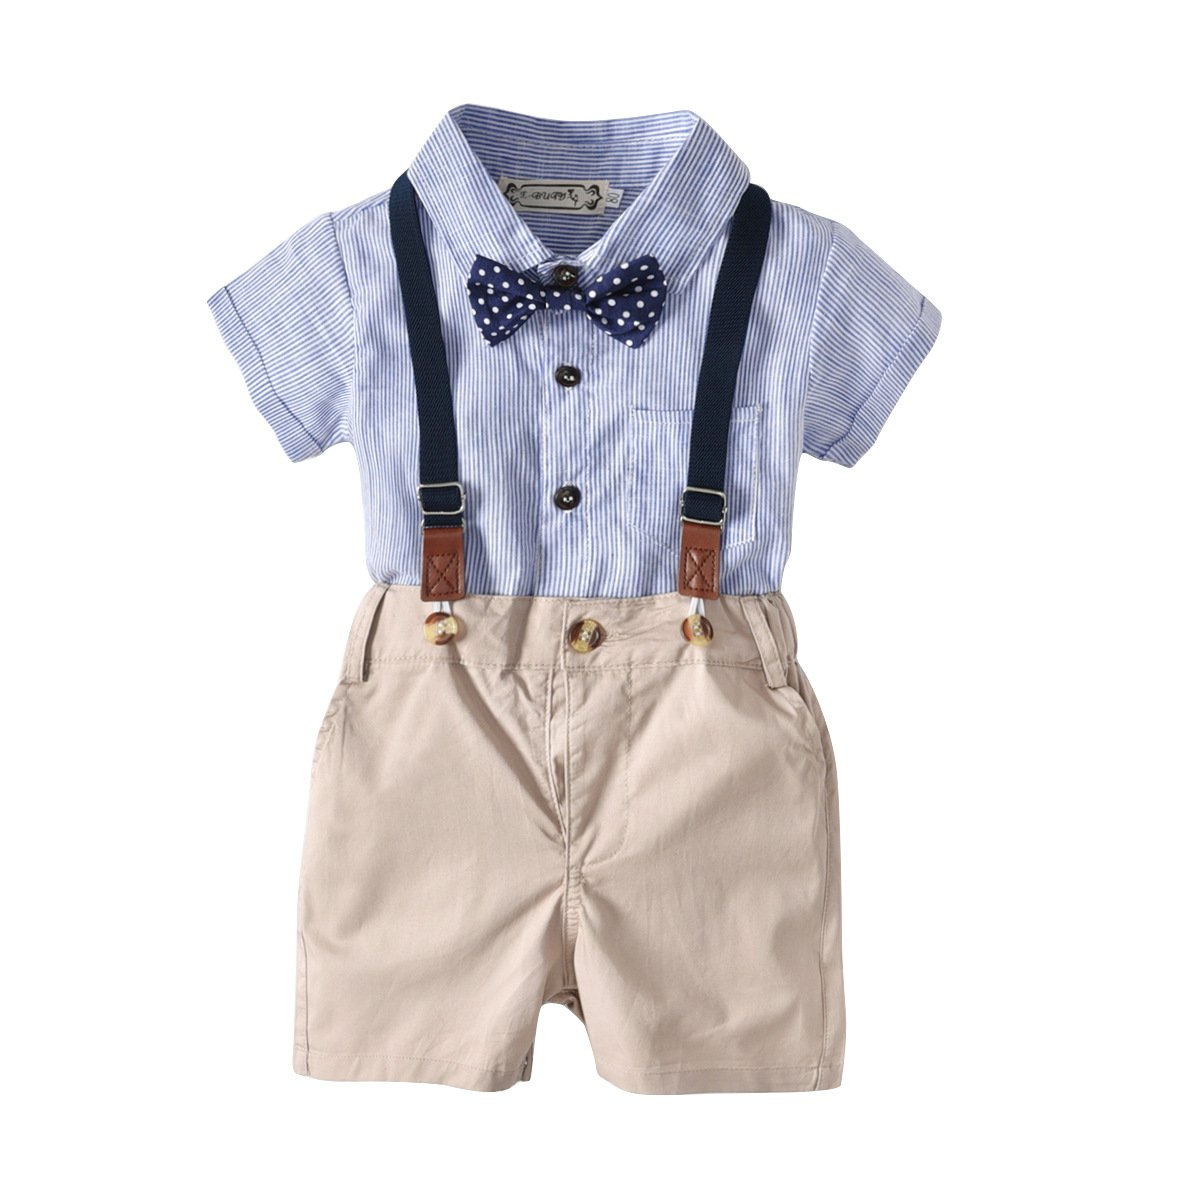 ALLAIBB Baby Boy Gentleman Outfits Two Pieces Blue Striped Shirt Overalls with Bowtie Size 70 (Blue) by ALLAIBB (Image #1)